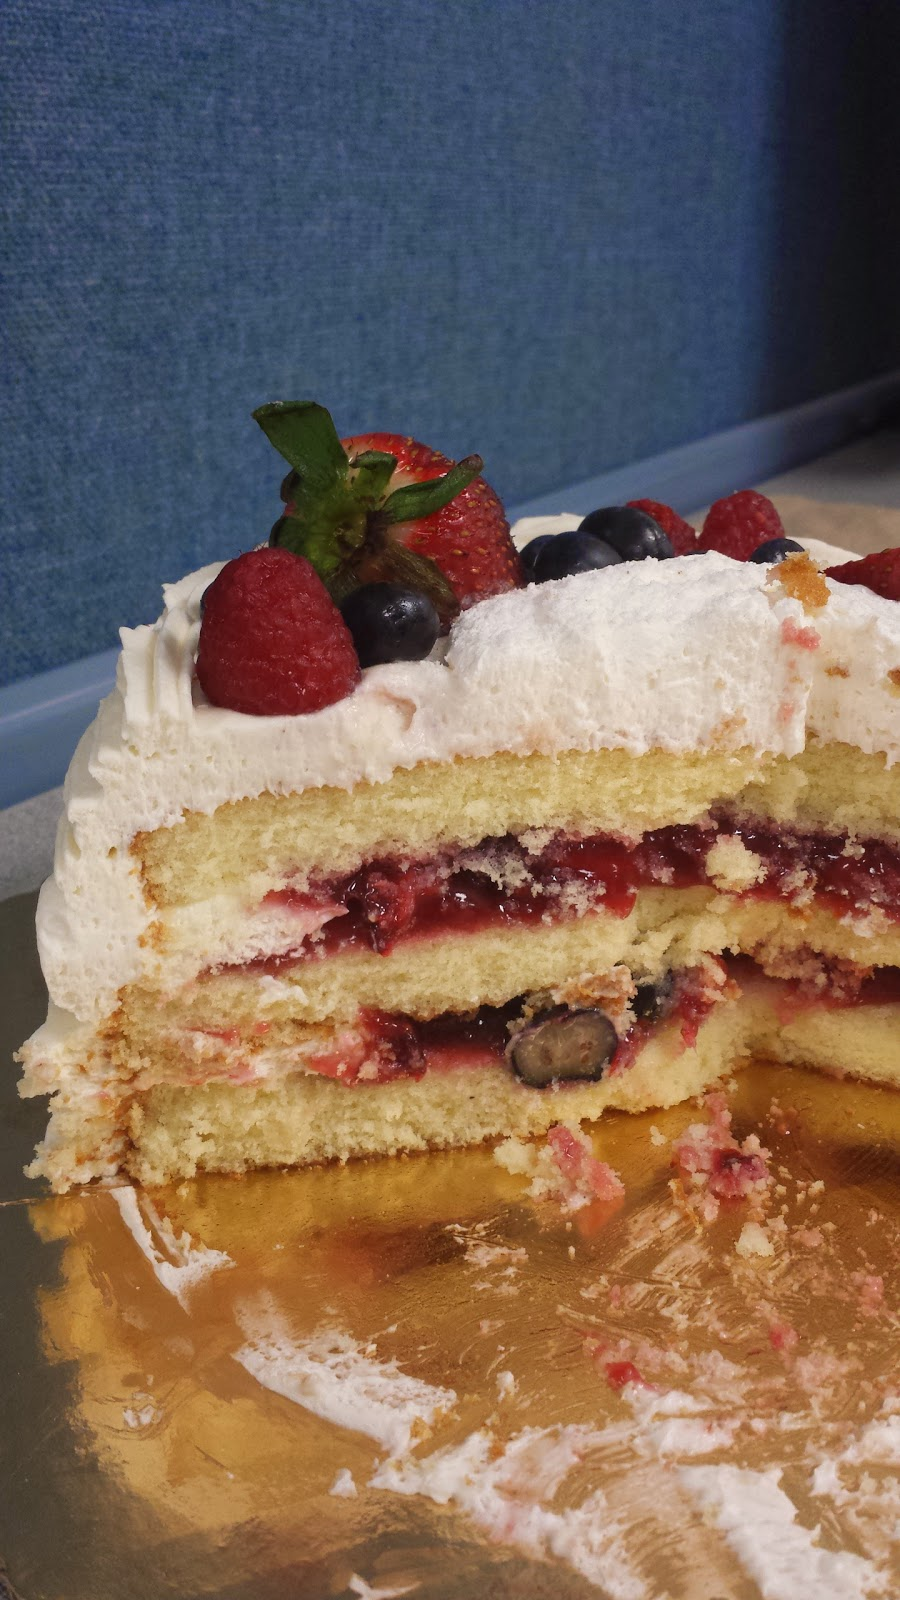 Chantilly Cake Review